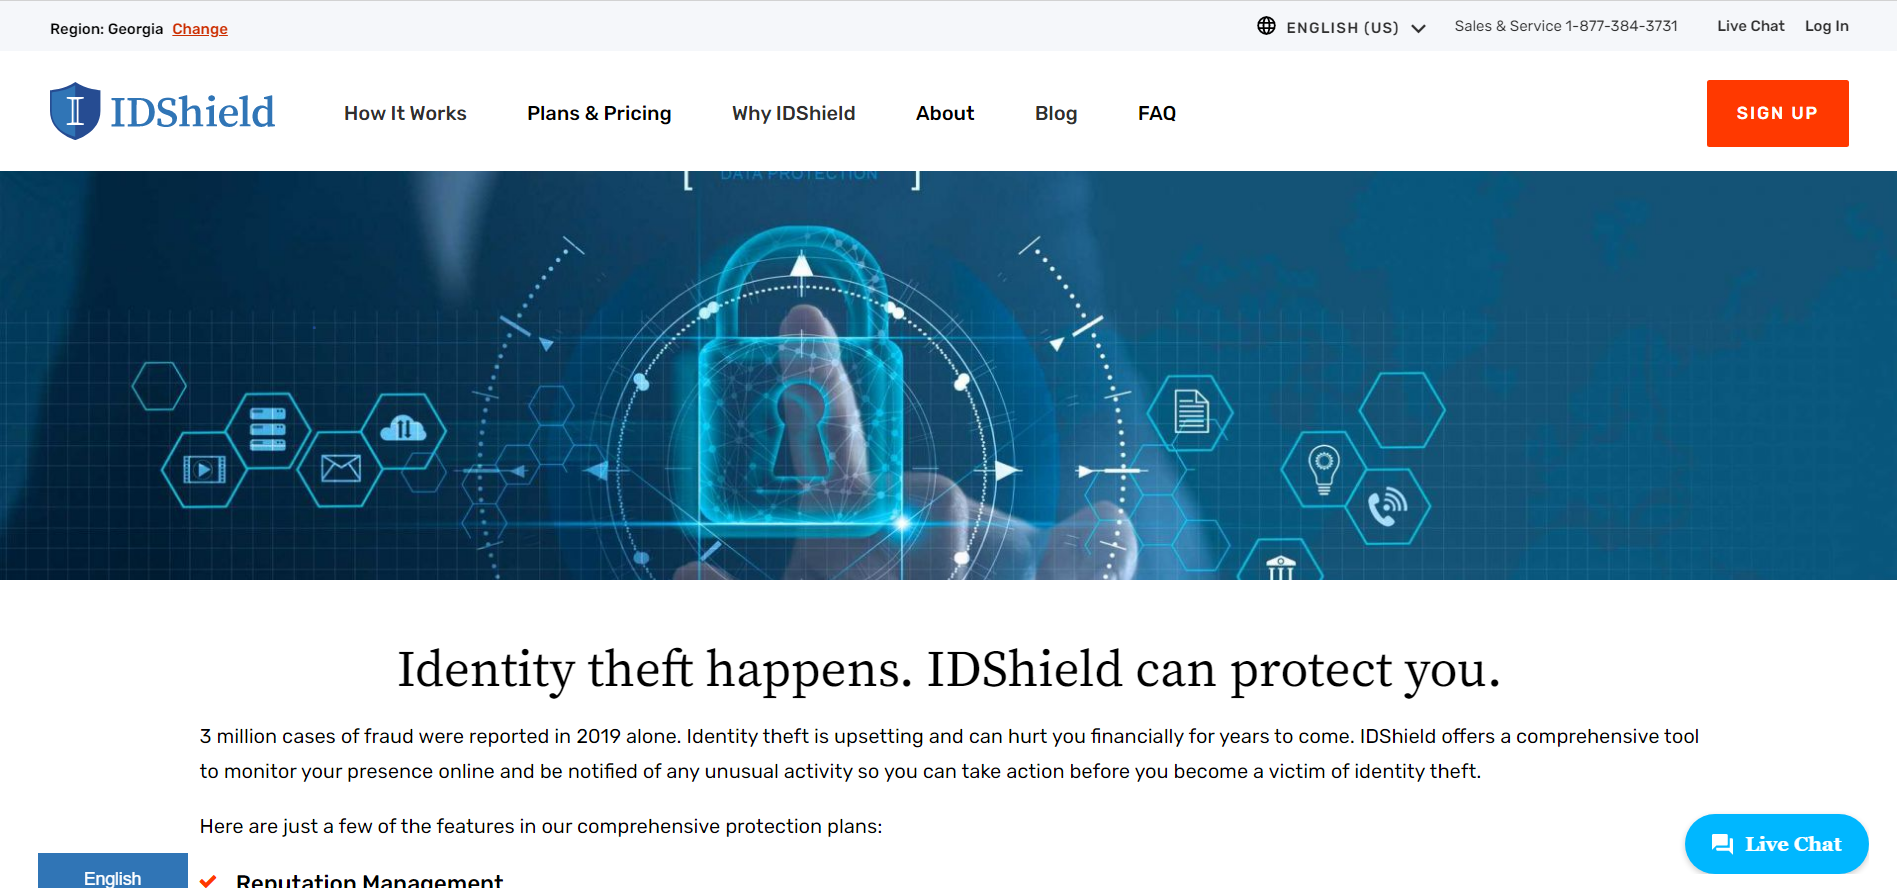 A screenshot of the IDShield website homepage.